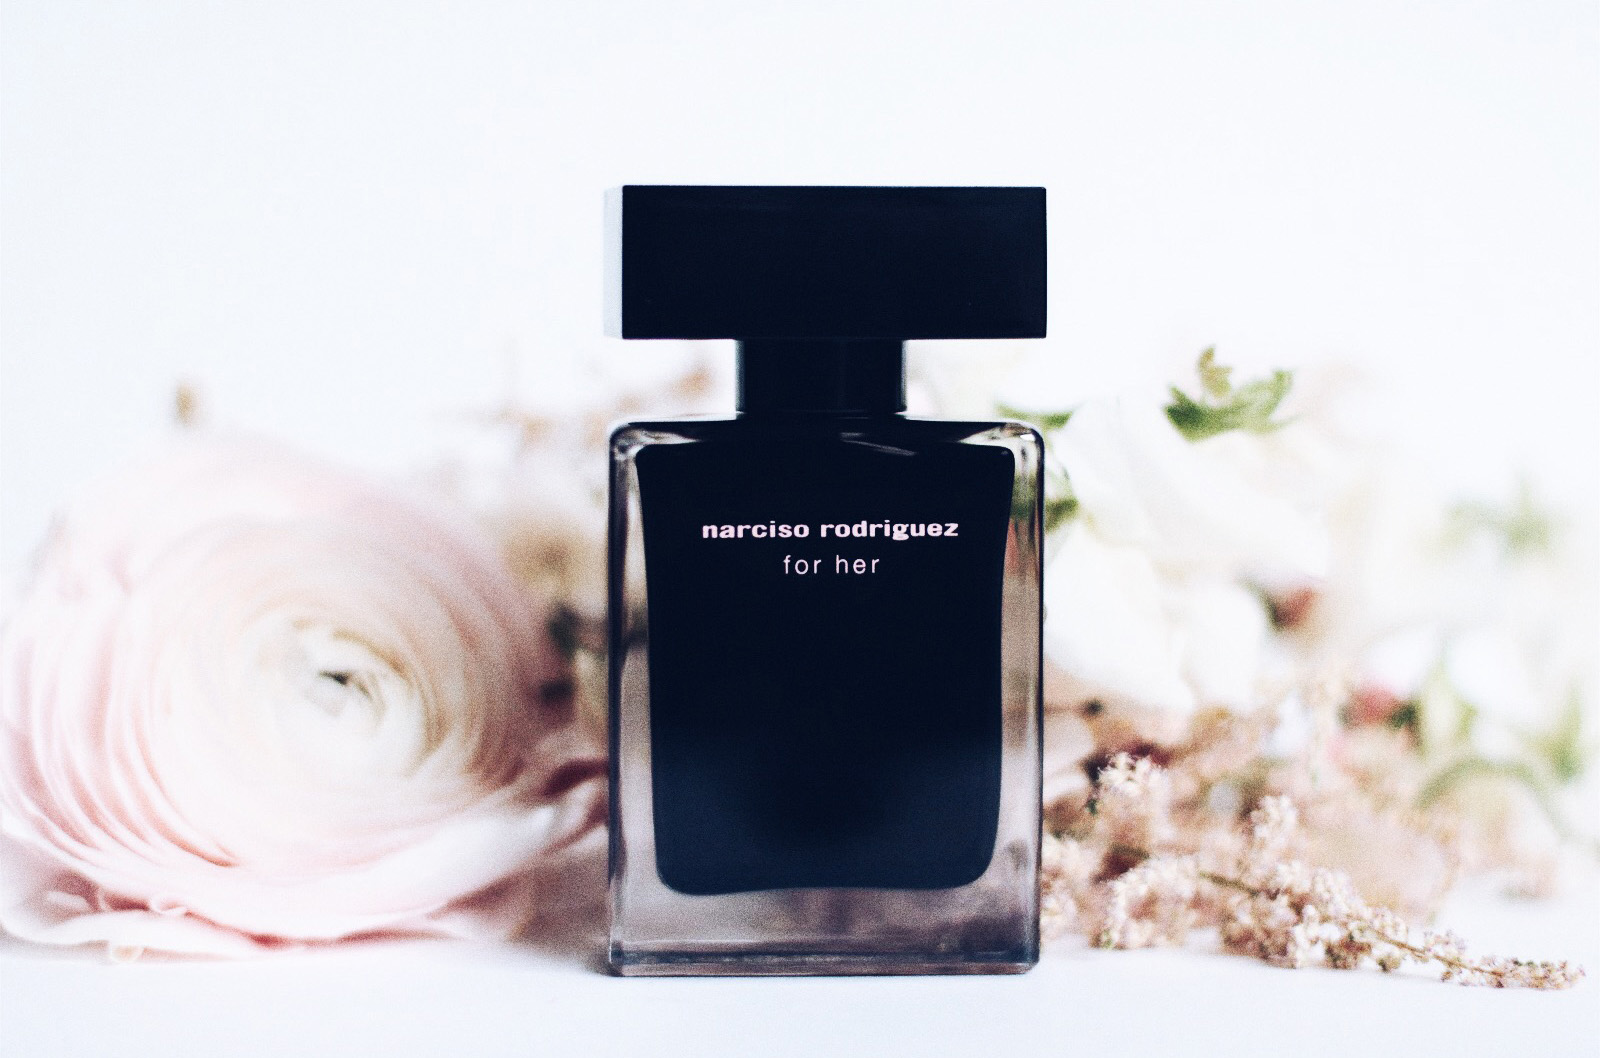 narciso rodriguez for her eau de parfum avis test